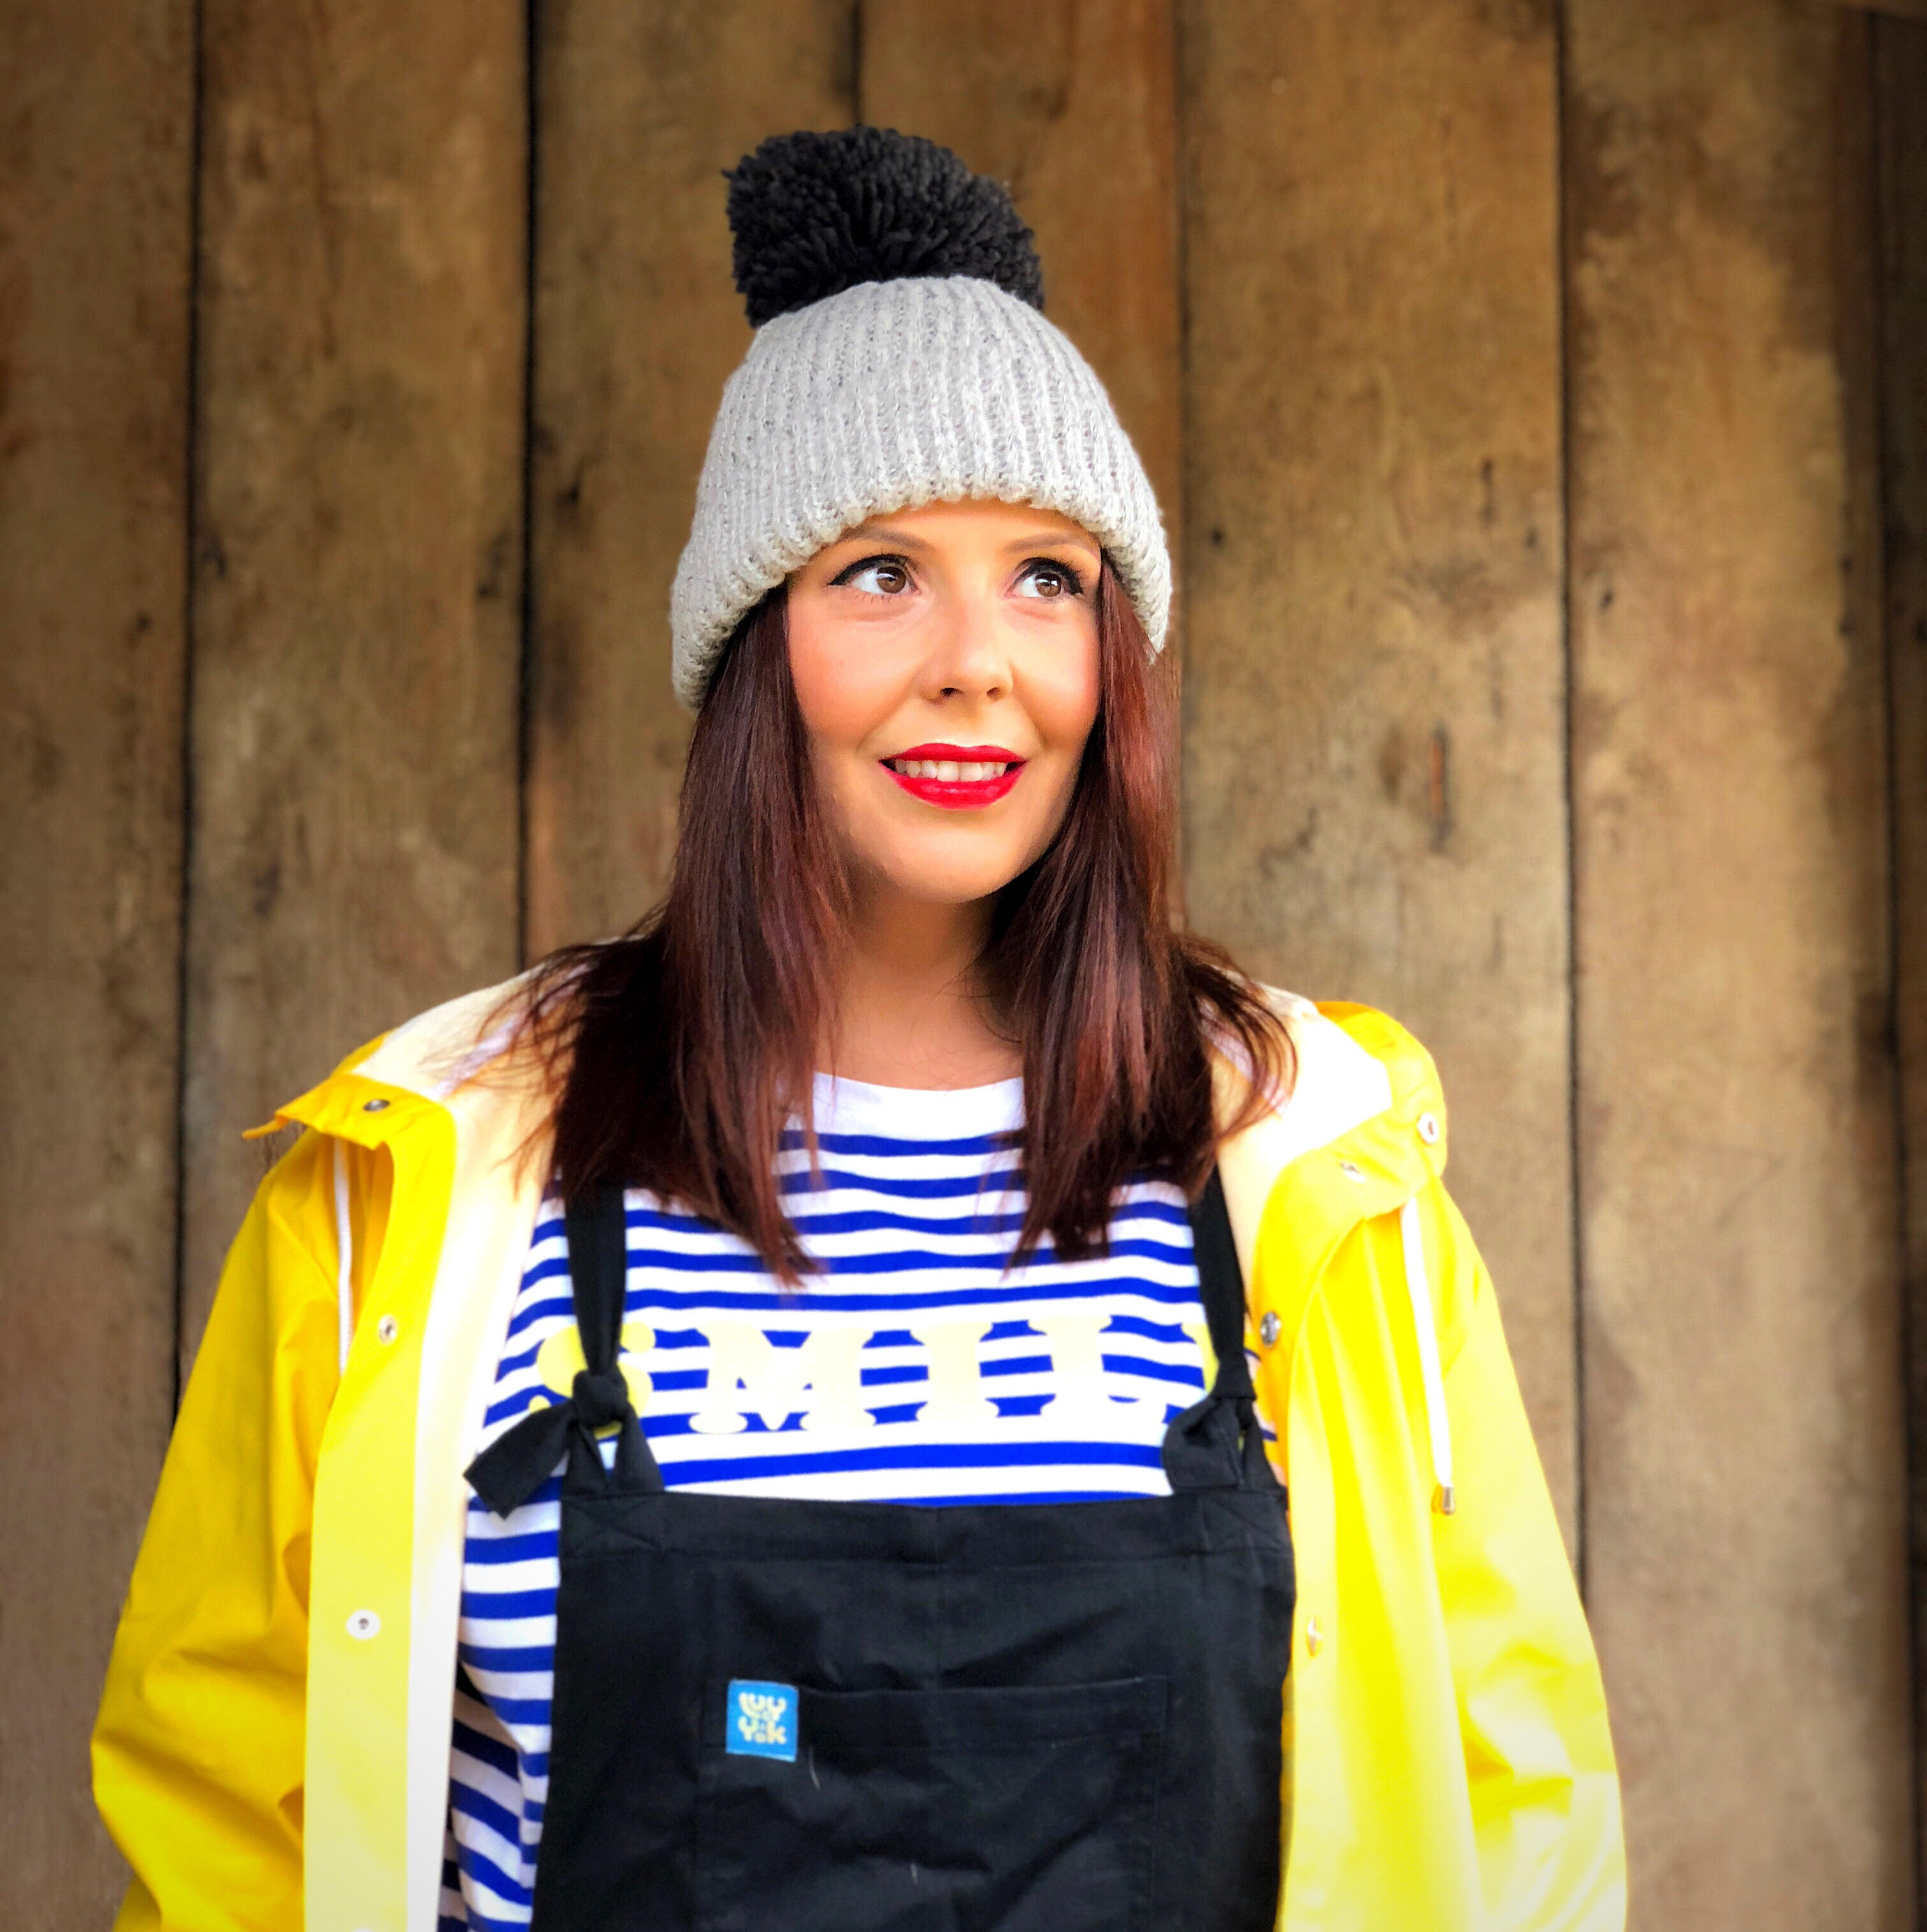 BRYT chats to vegan blogger, Sarah Kirby